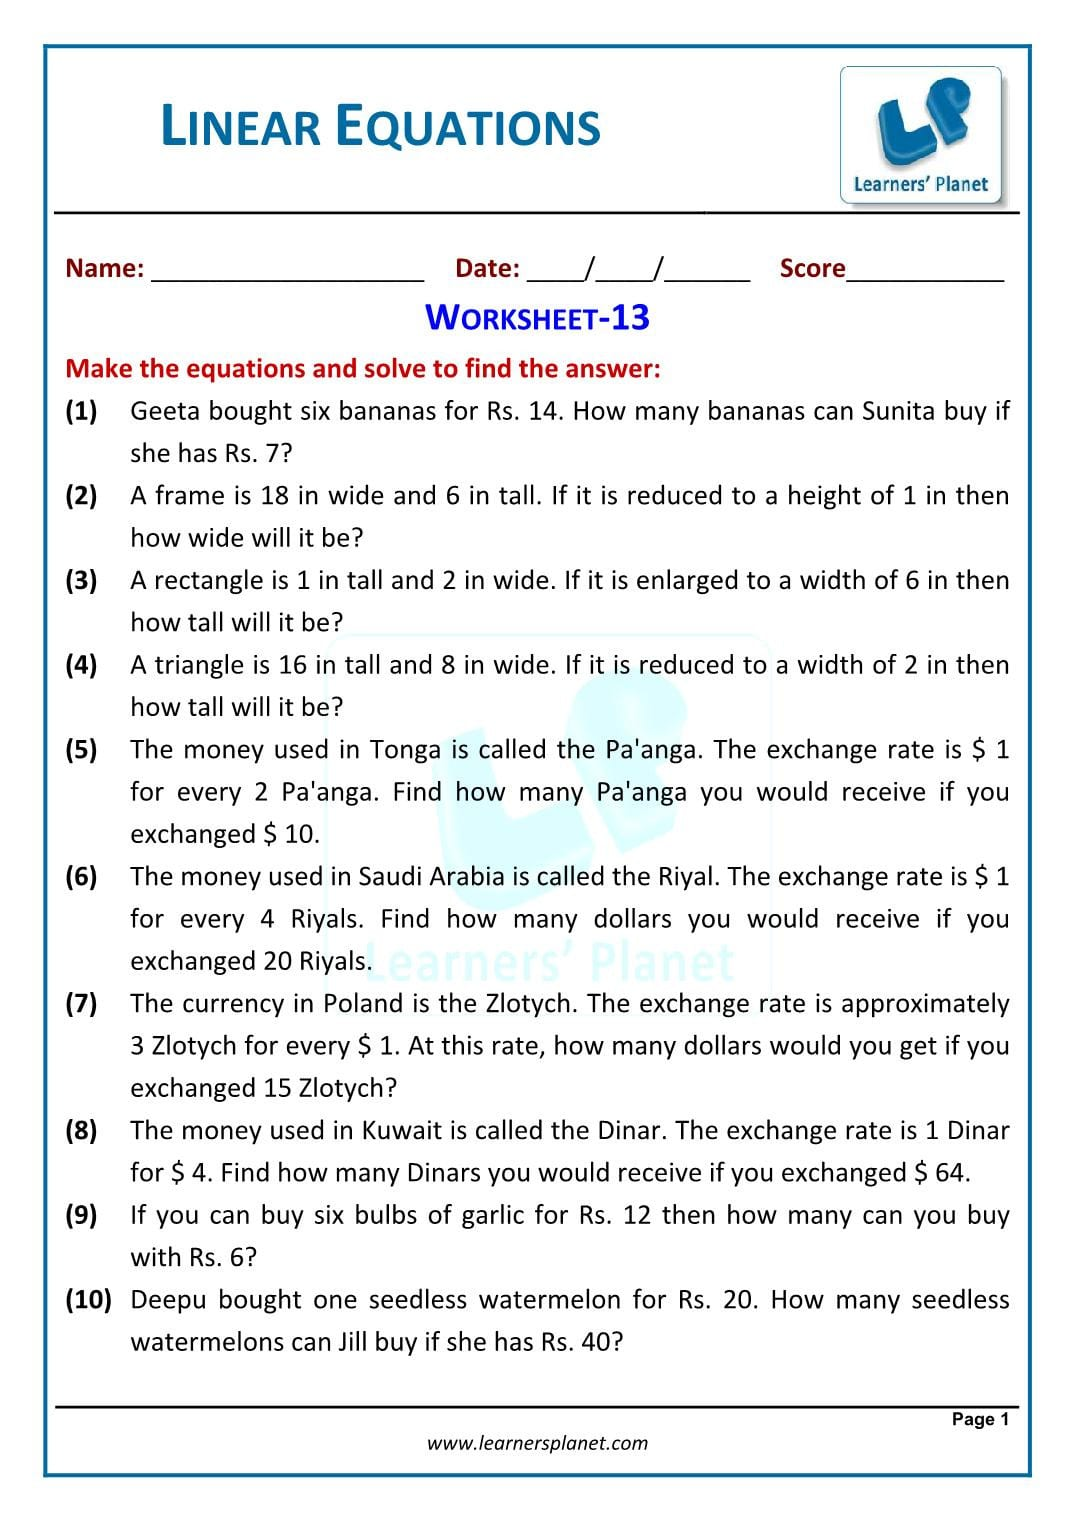 Worksheet For Linear Equations In One Variable Class 7